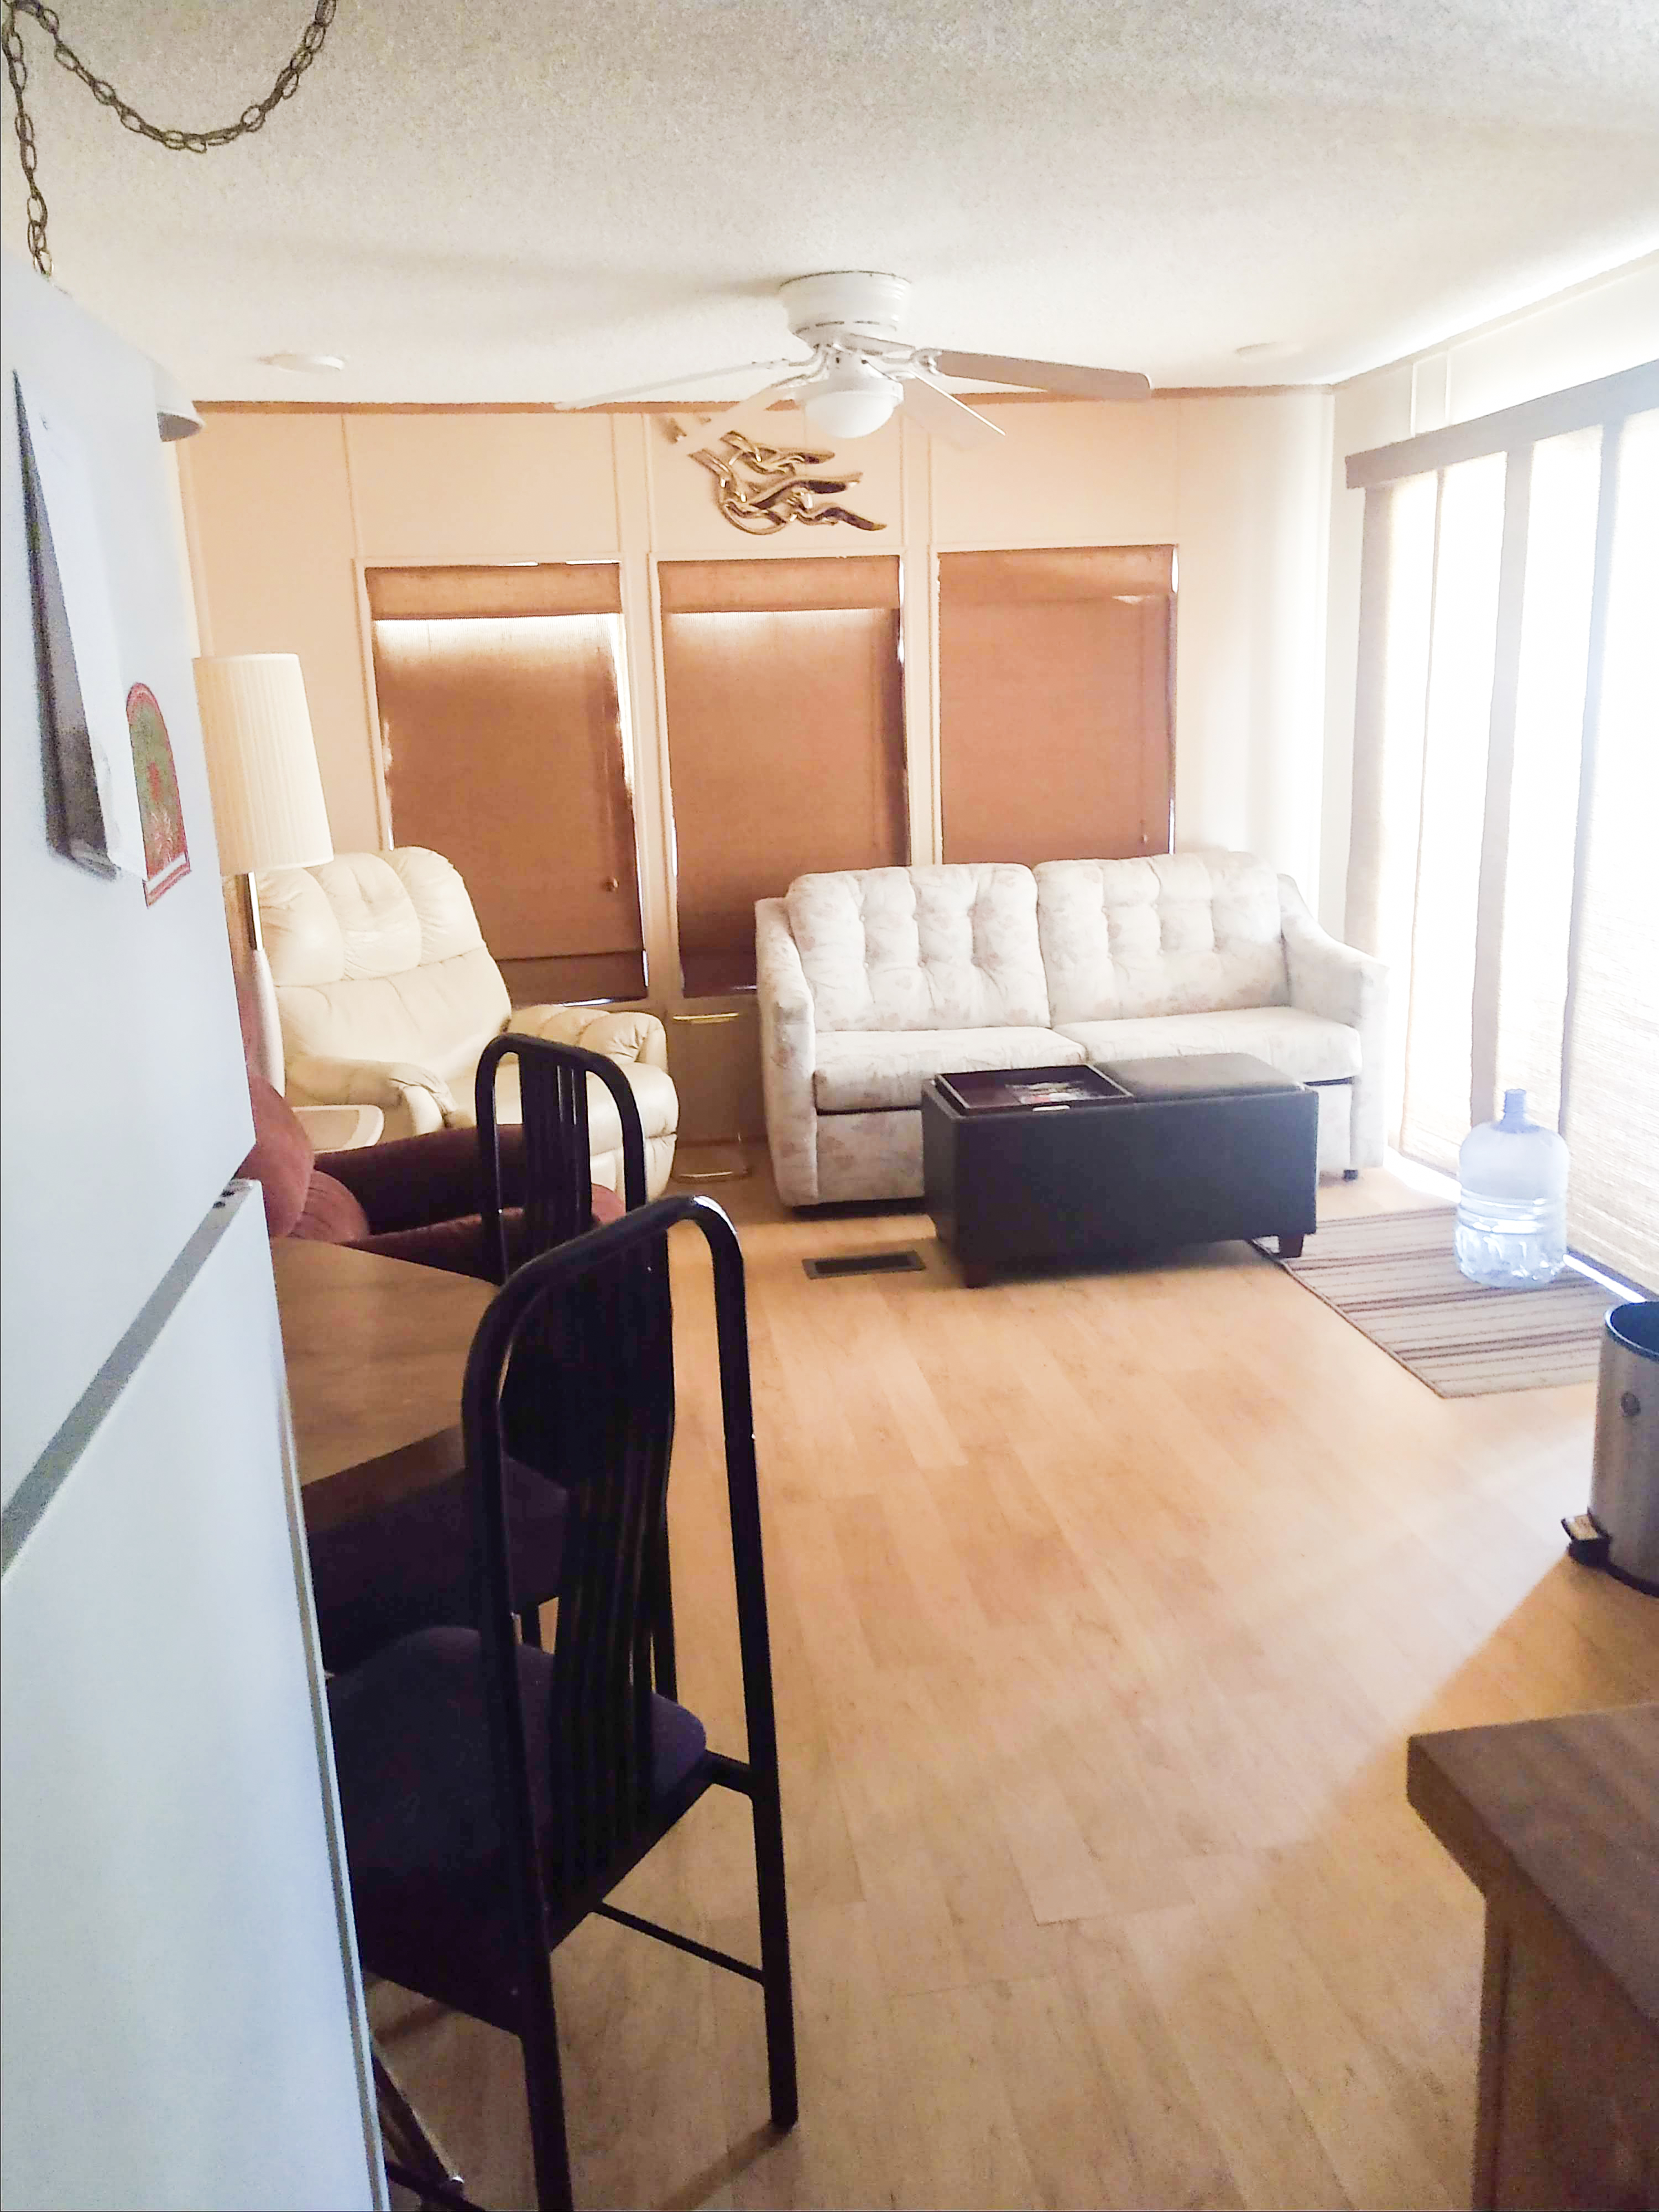 Top RV park with conducive space & amenities for seniors to enjoy private getaways